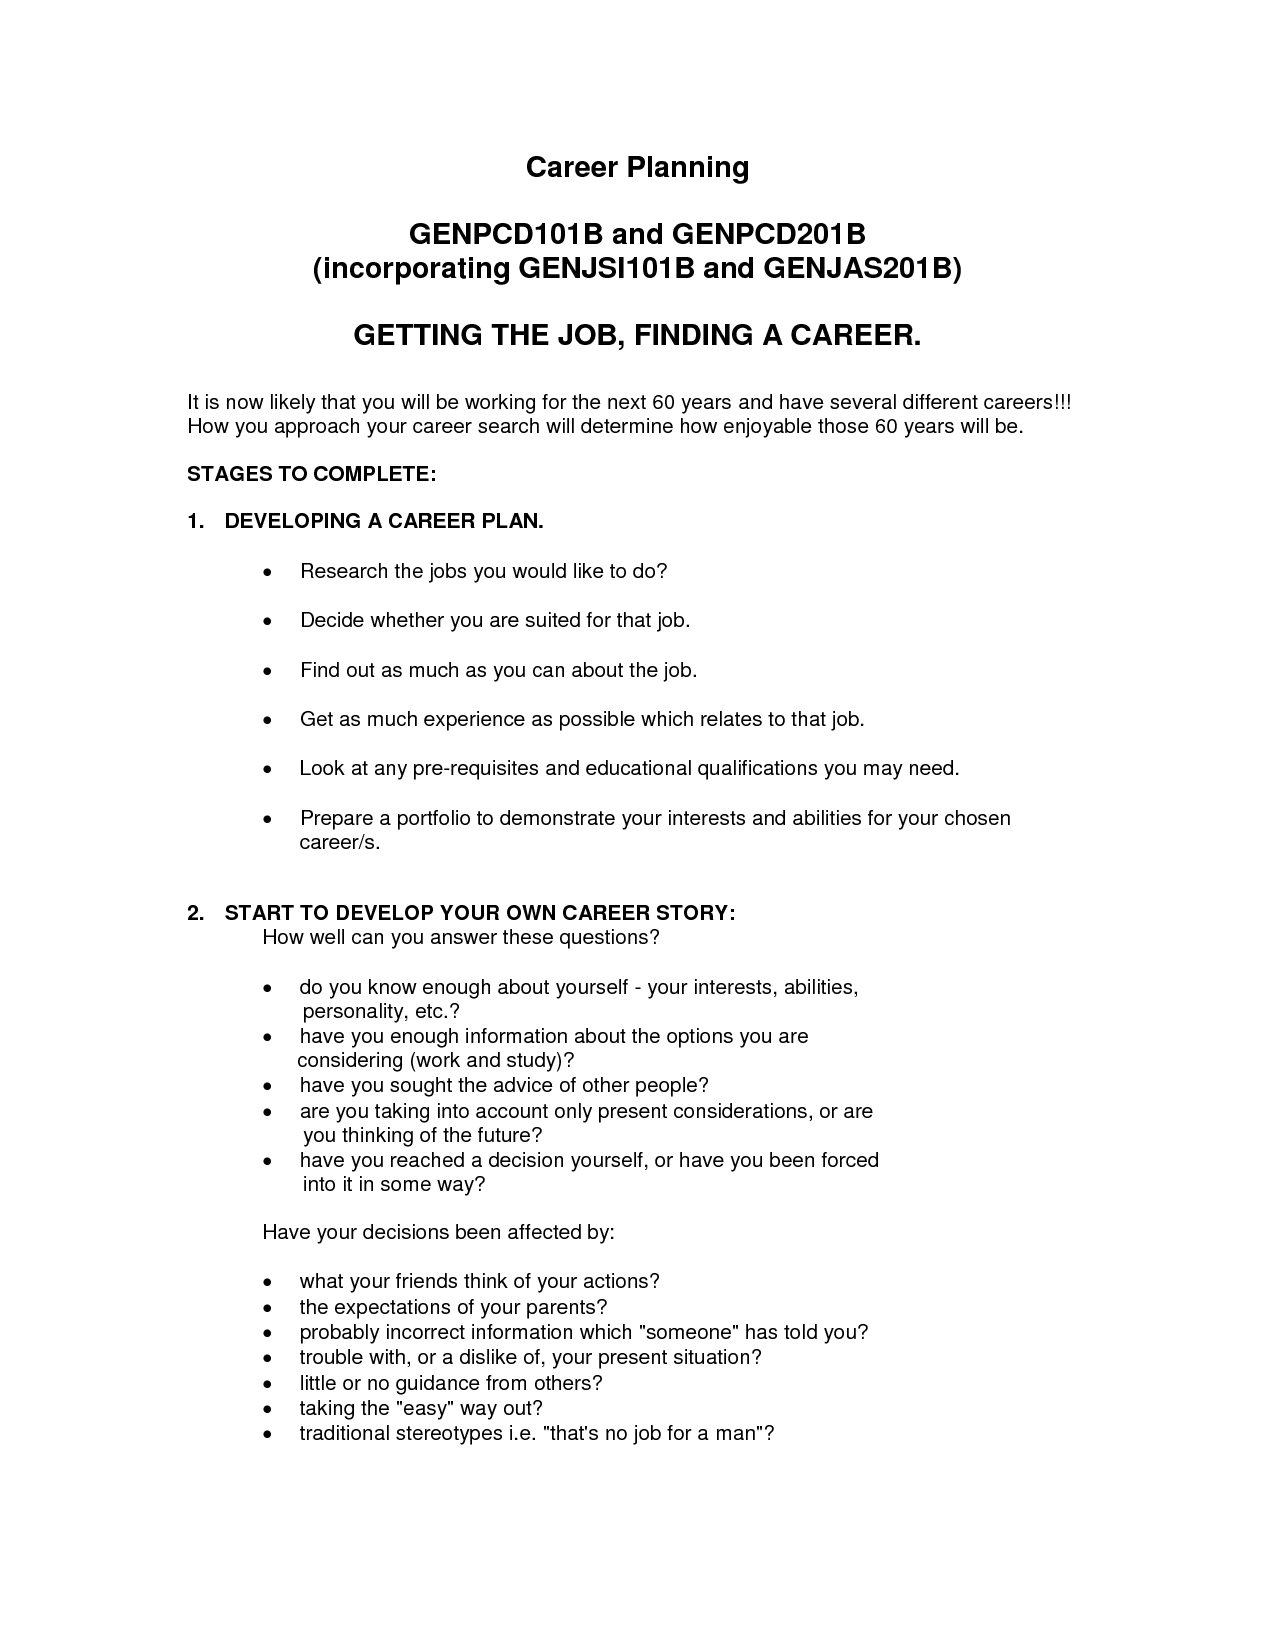 sample resume for truck driver with no experience - Romeo.landinez.co